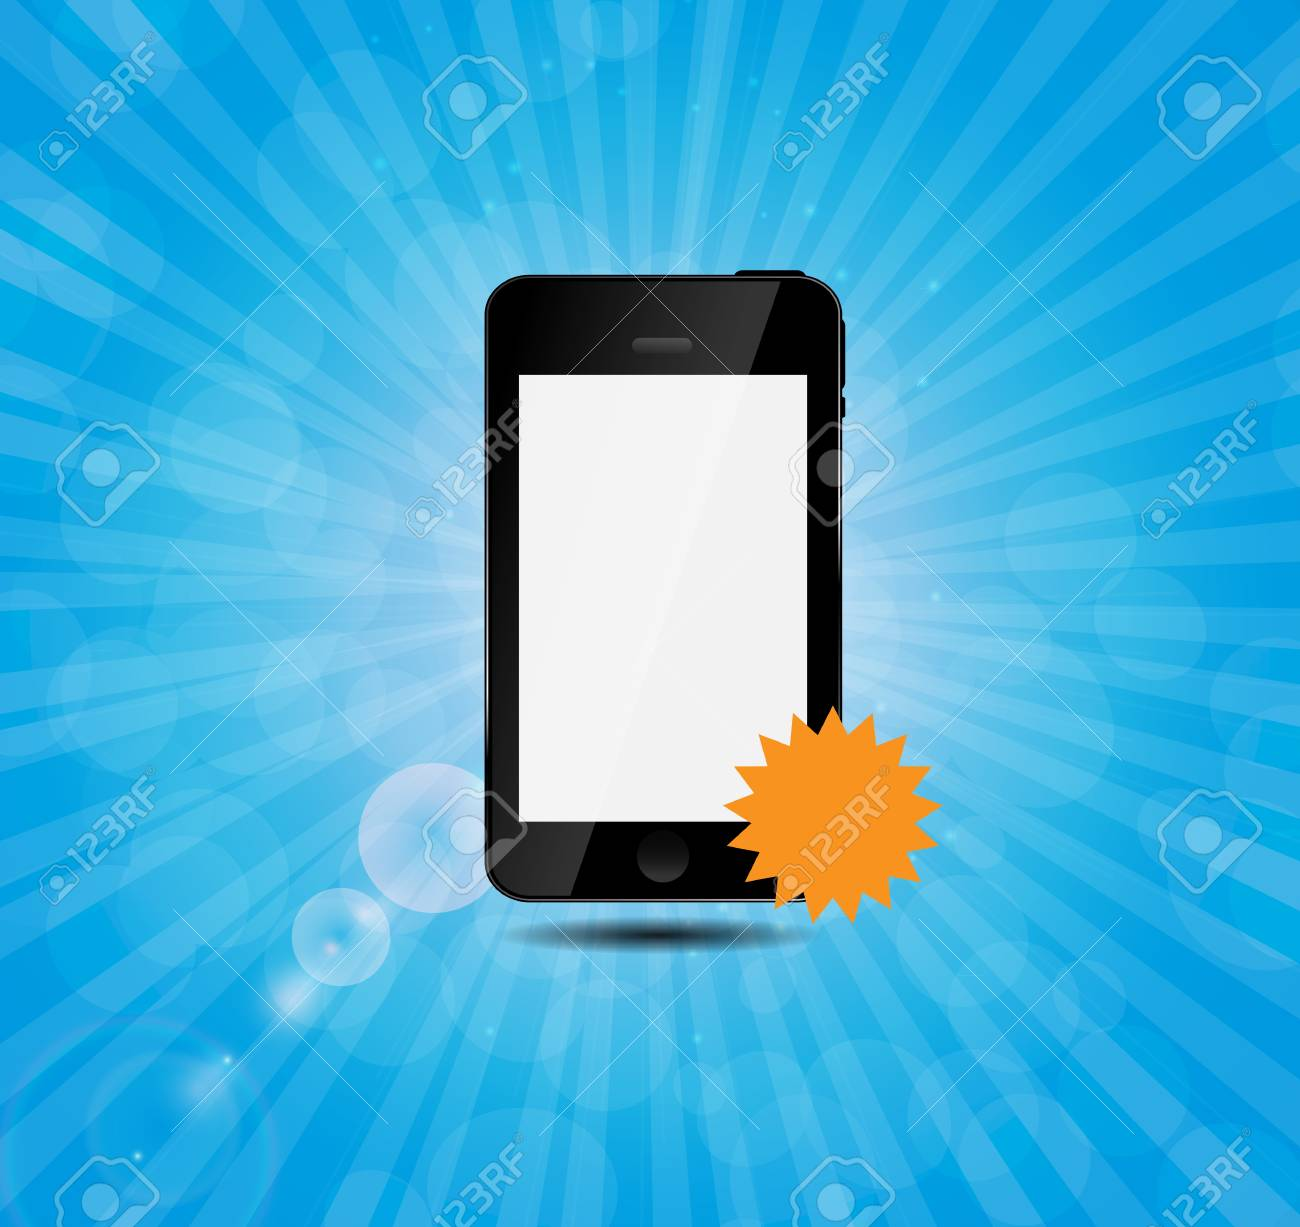 Mobile phone with price label vector illustration Stock Vector - 23392092